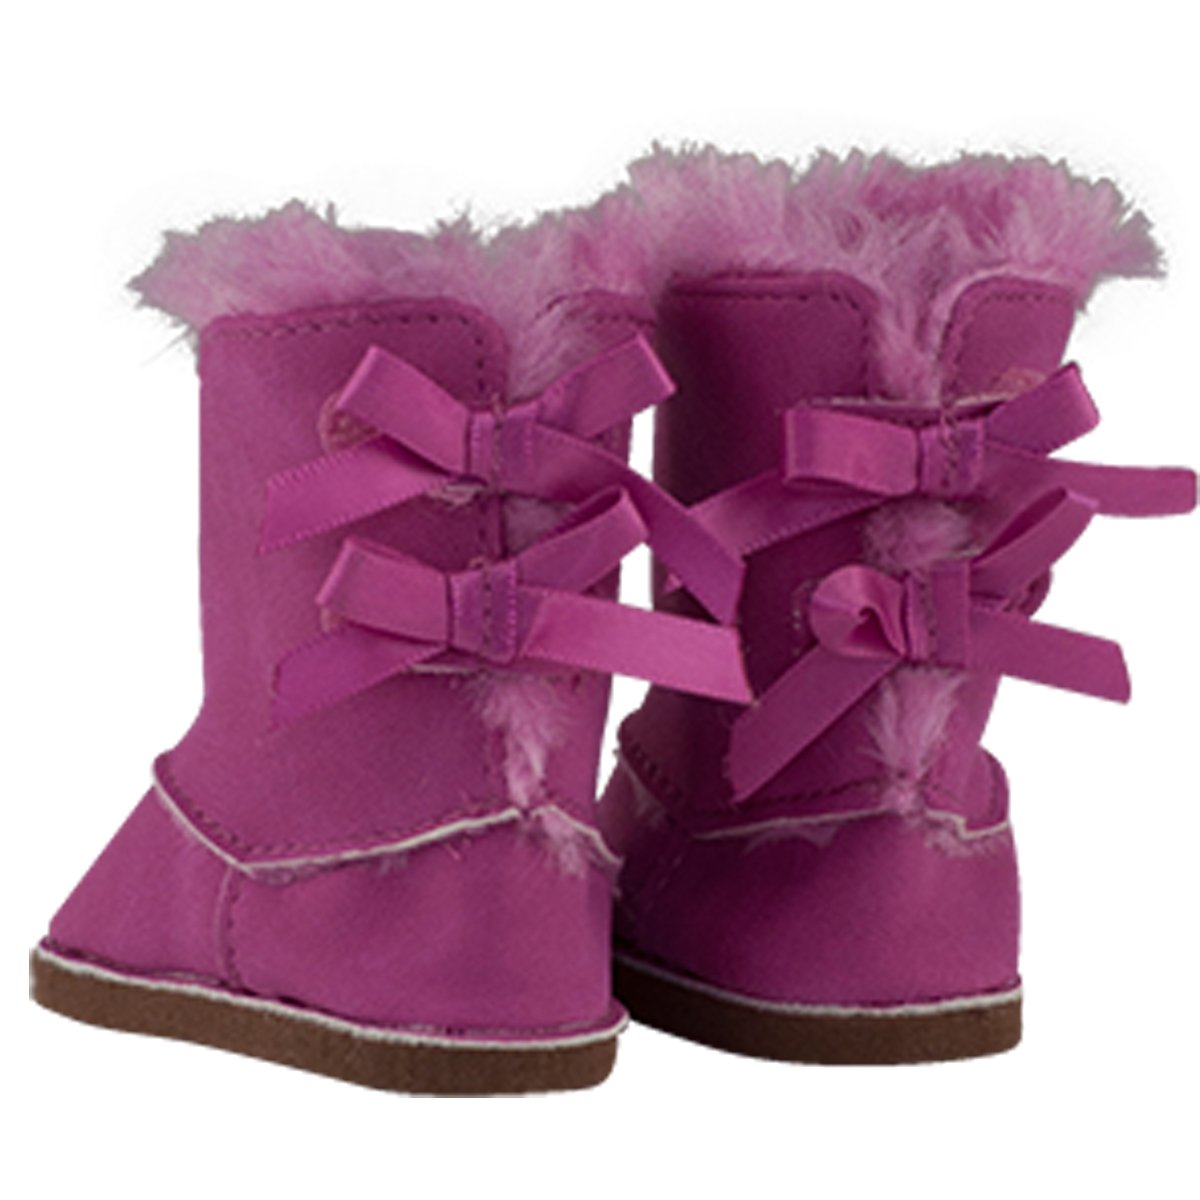 Pink//white Fuzzy Slippers -compatible with 18 American Girl Dolls /& More 18 DOLL WINTER BOOTS /& FUZZY SLIPPERS MangoPeaches Doll DELUXE set of 2 shoes-suede fuzzy Boots with 2 pink bows on the back